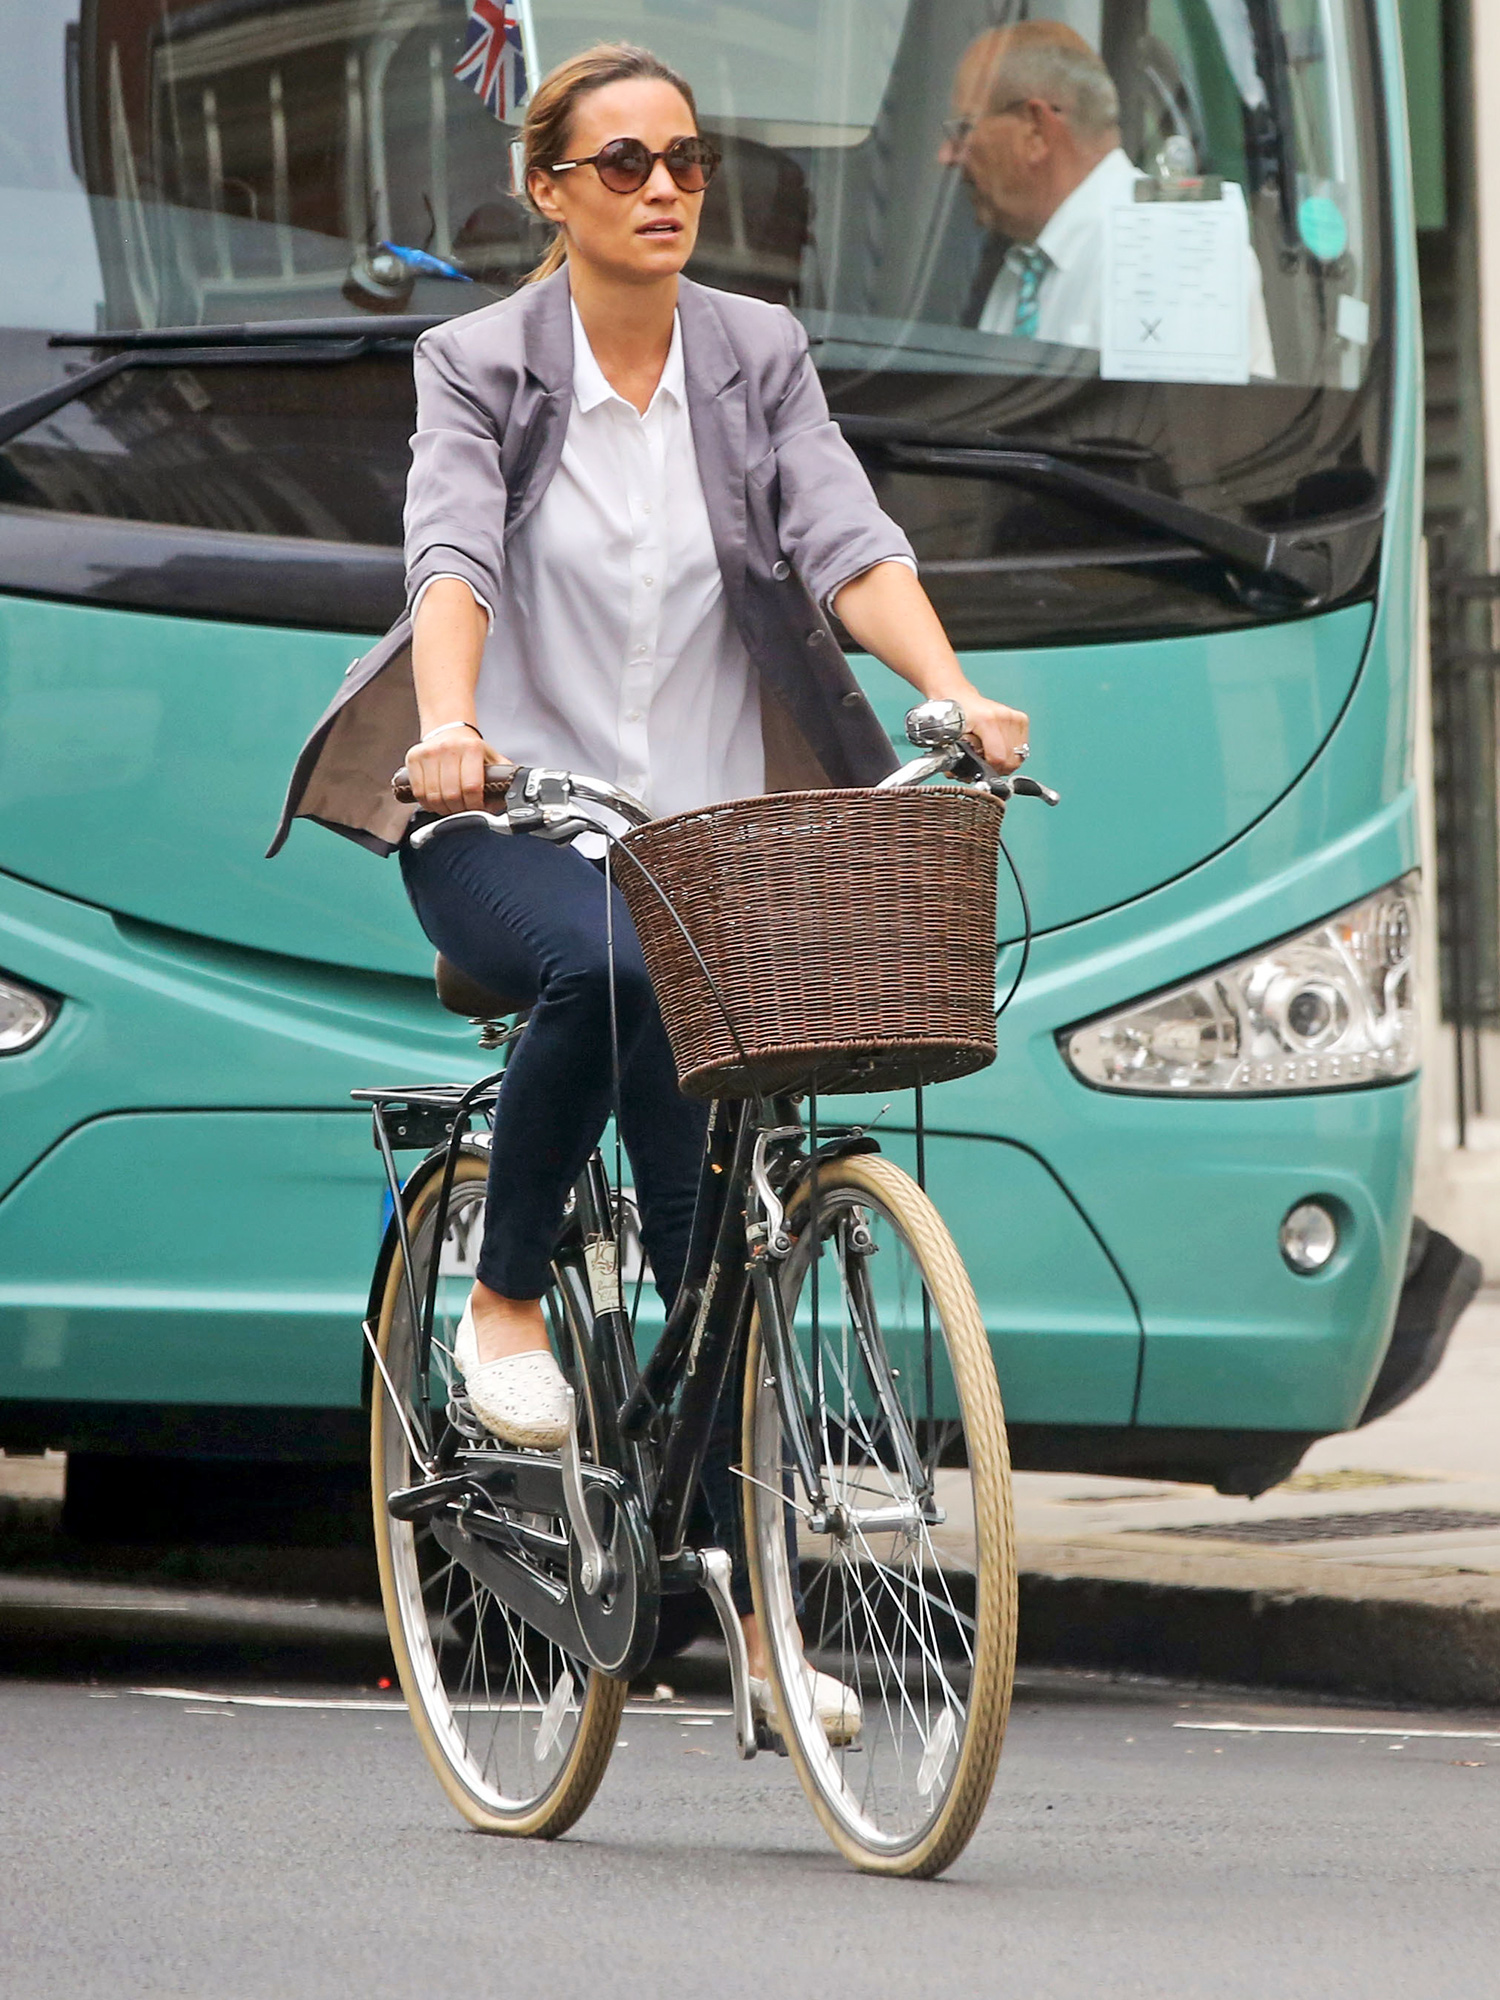 EXCLUSIVE: Birthday girl Pippa Middleton, who is rumoured to be following her sister into motherhood, goes for a bike ride on her 34th birthday